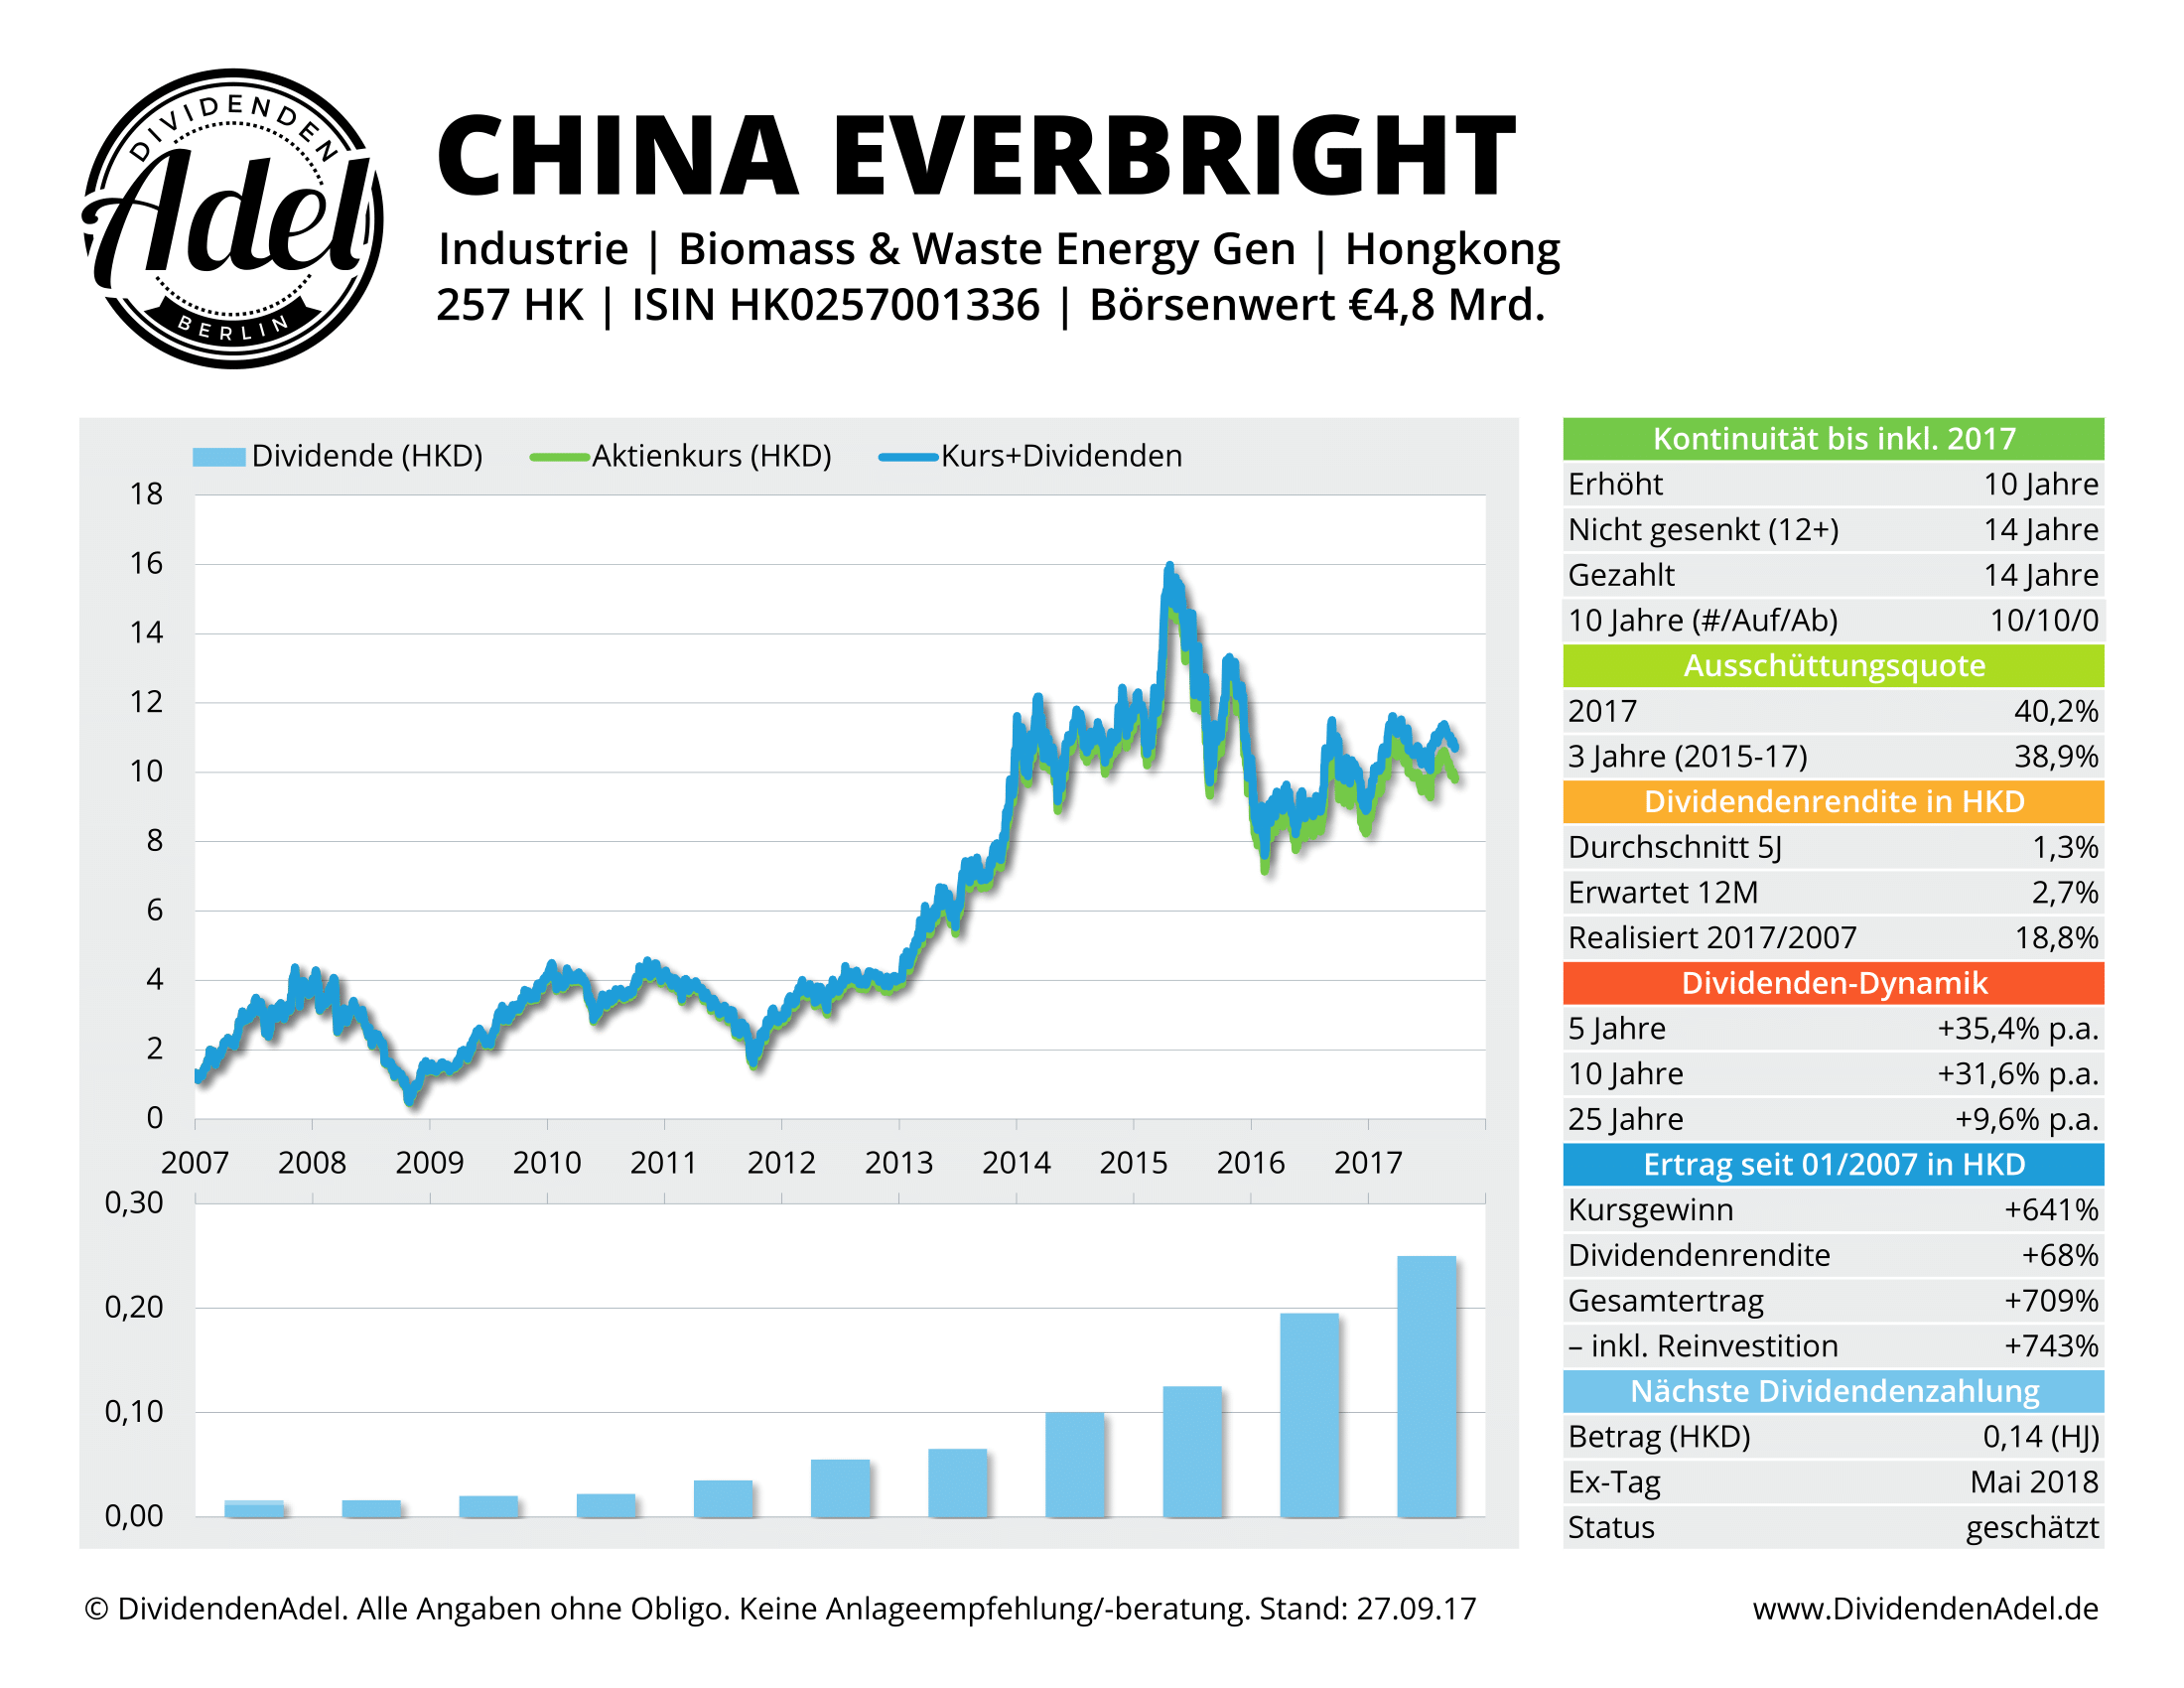 2017-09-27 60 CHINA EVERBR INT DividendenAdel-Profil ab 2007-1